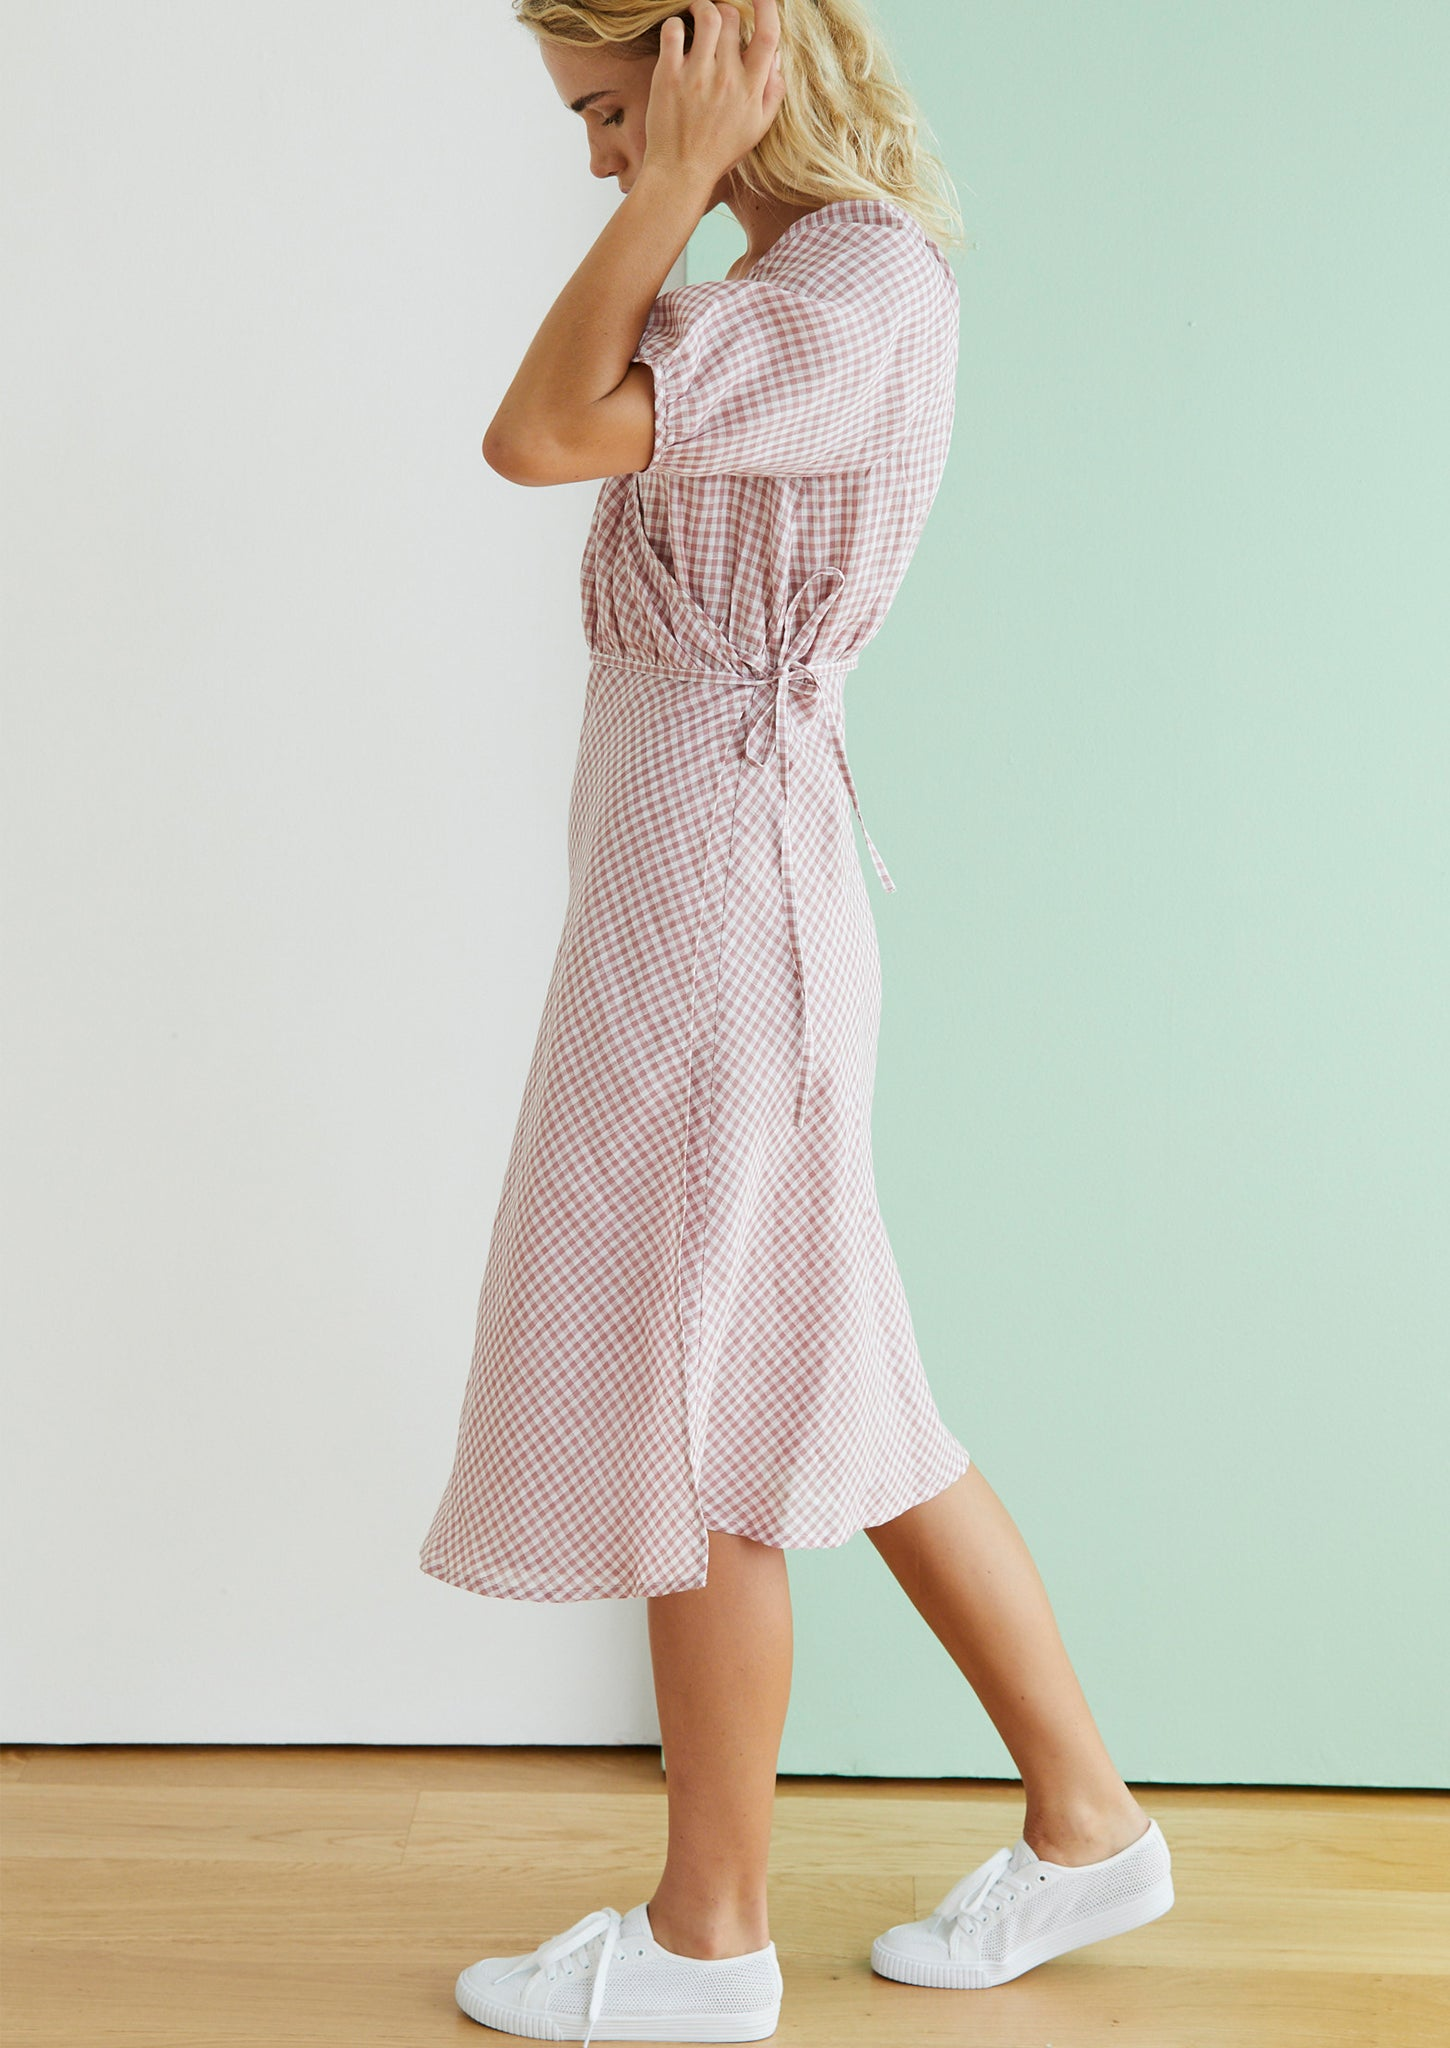 Cross My Heart in Pink Gingham